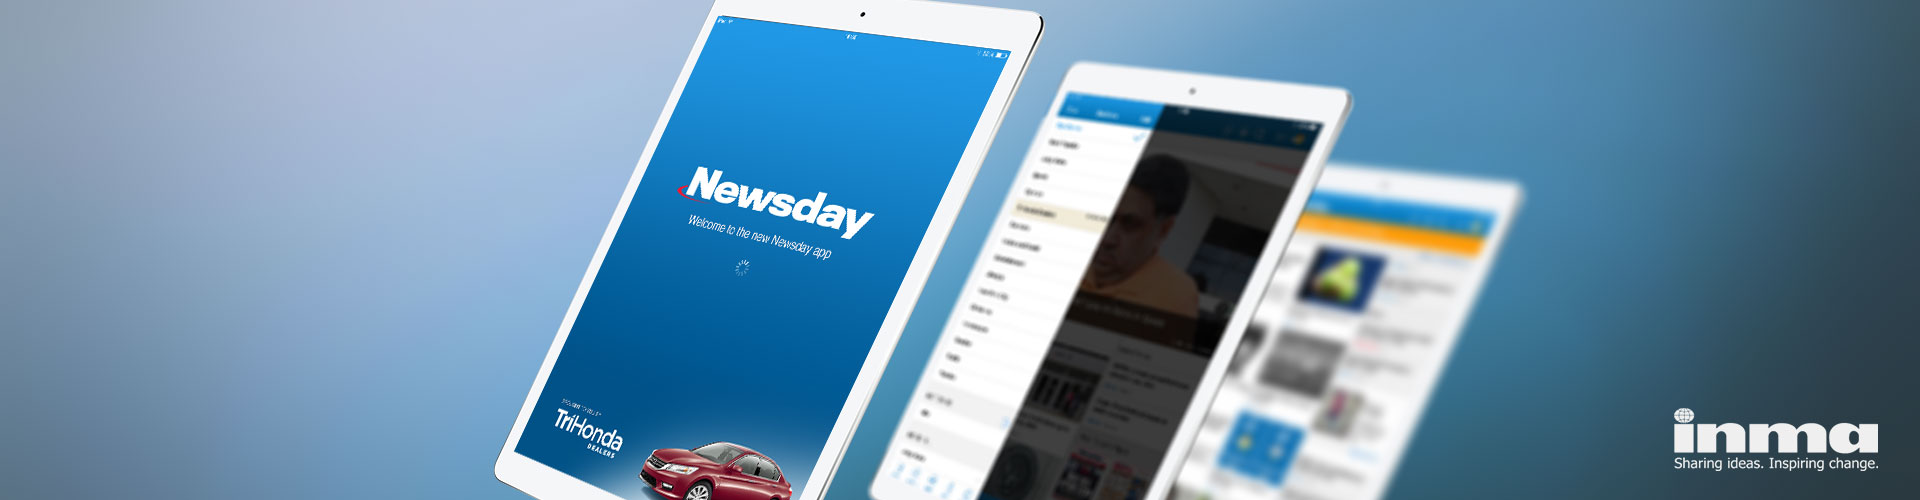 Image of Newsday Wins INMA Global Media Award for 'Best Use of Mobile'